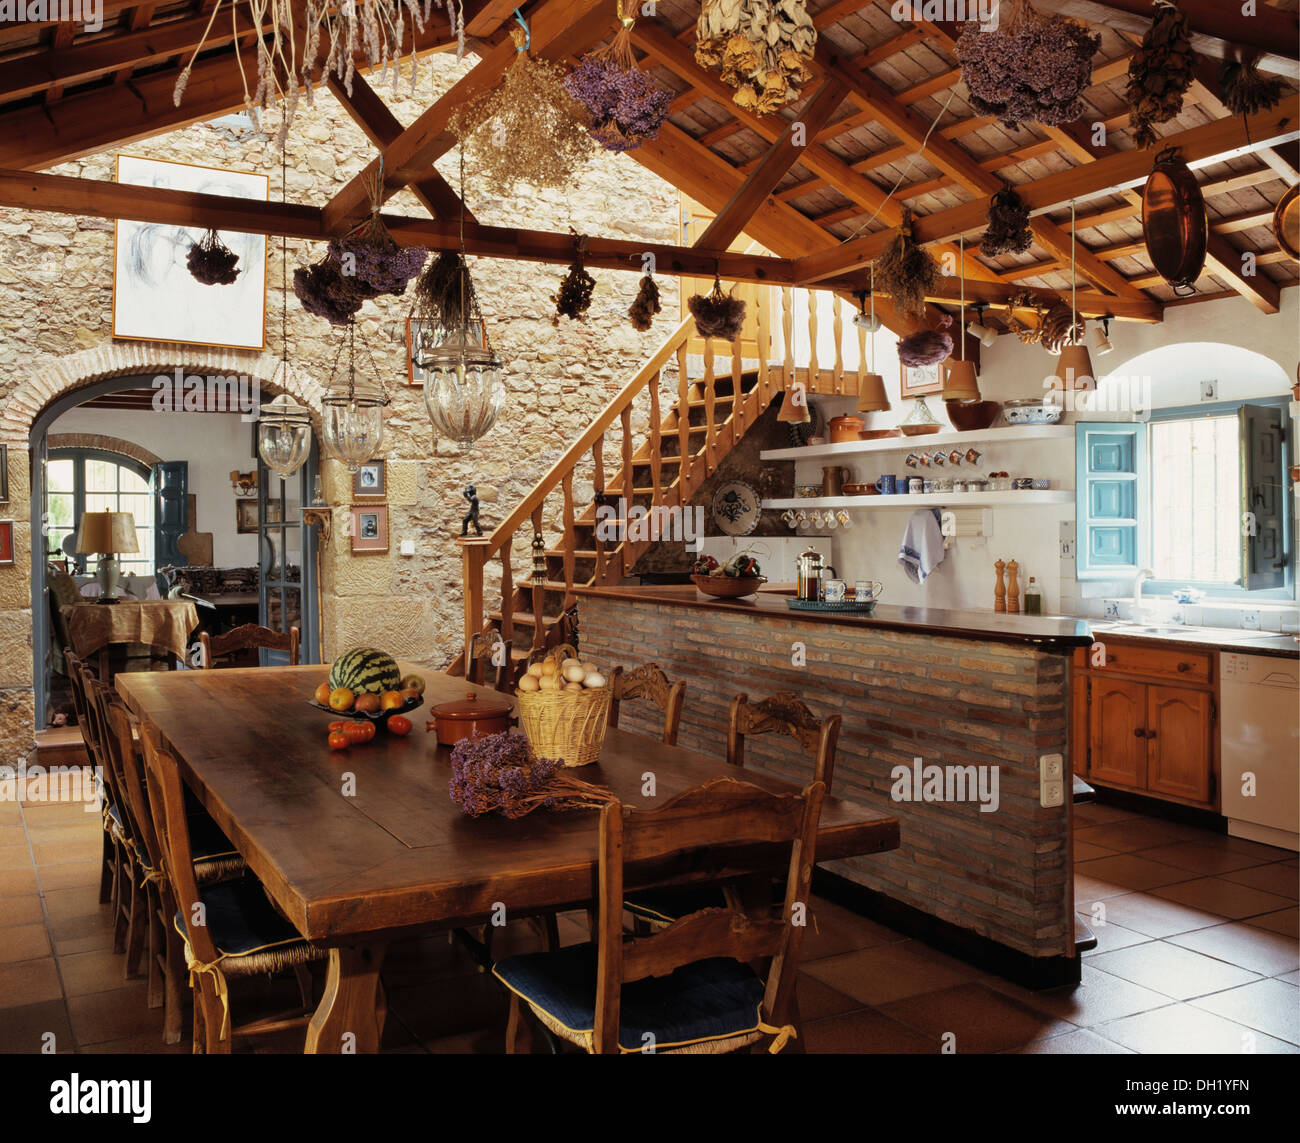 Rustic wooden table and chairs in dining area of large for Rustic dining area